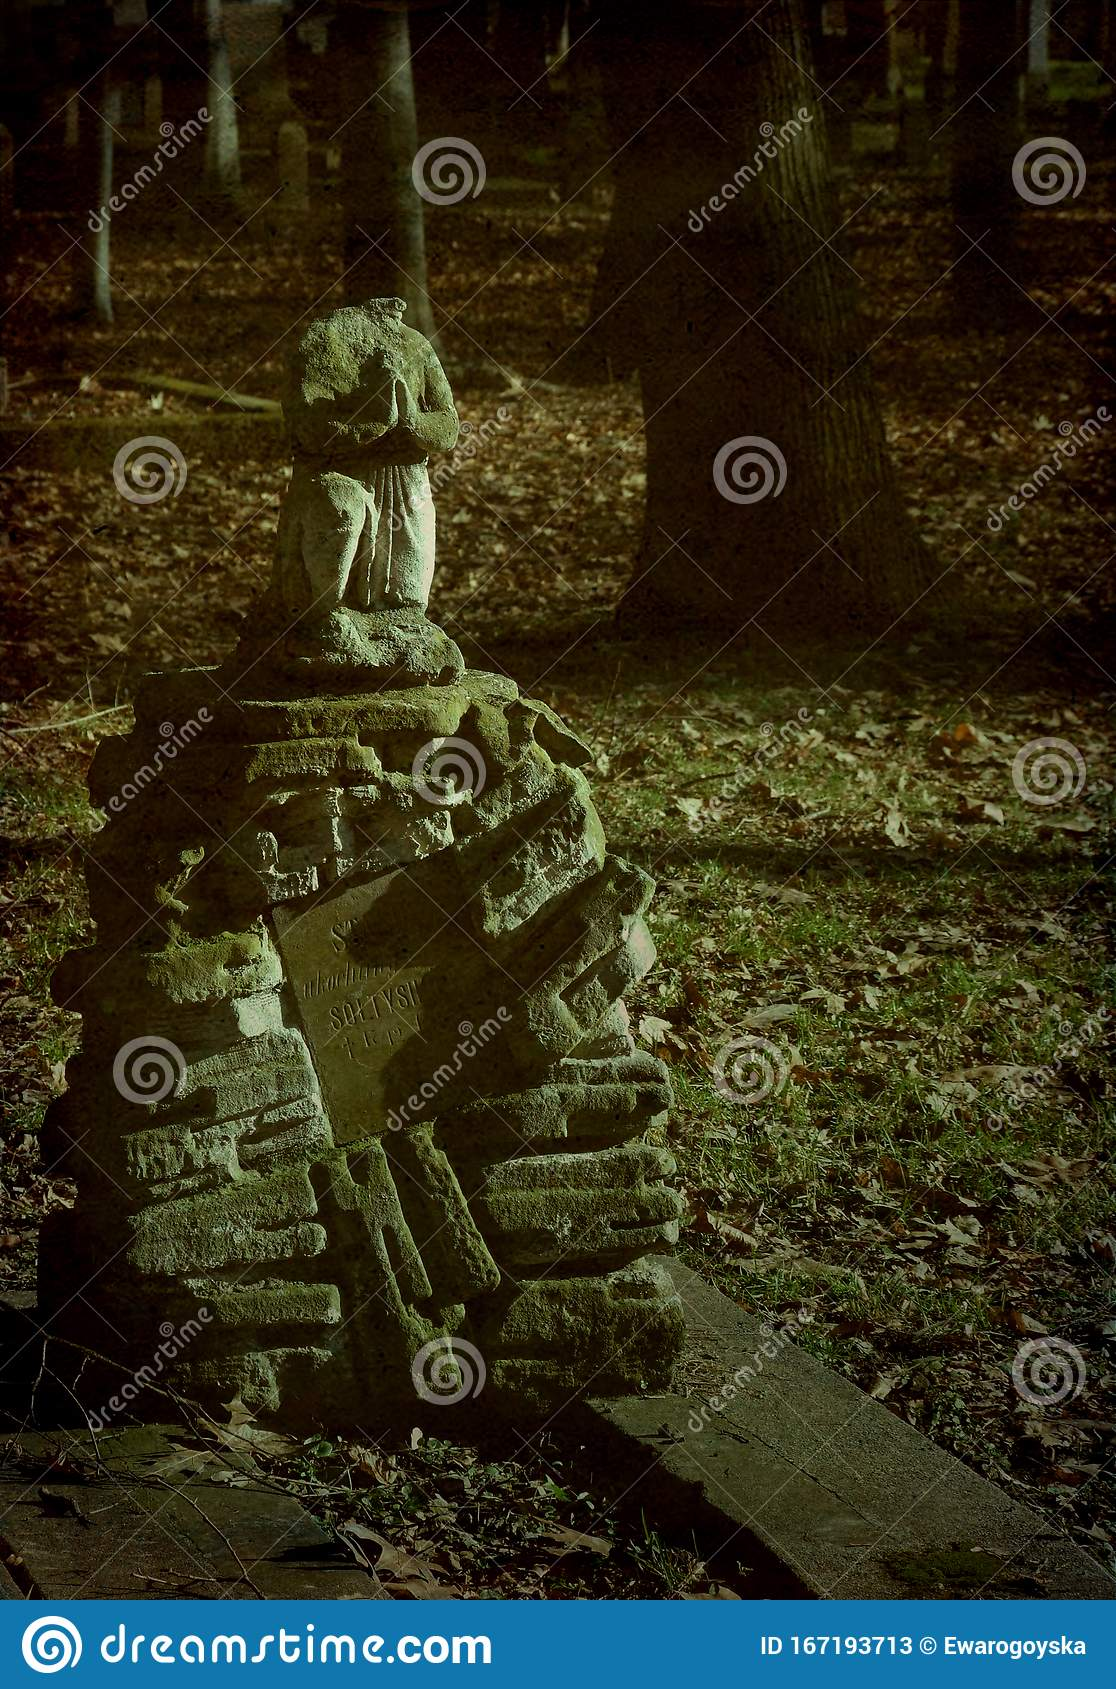 Royalty Free Tombstone Pictures, Images and Stock Photos